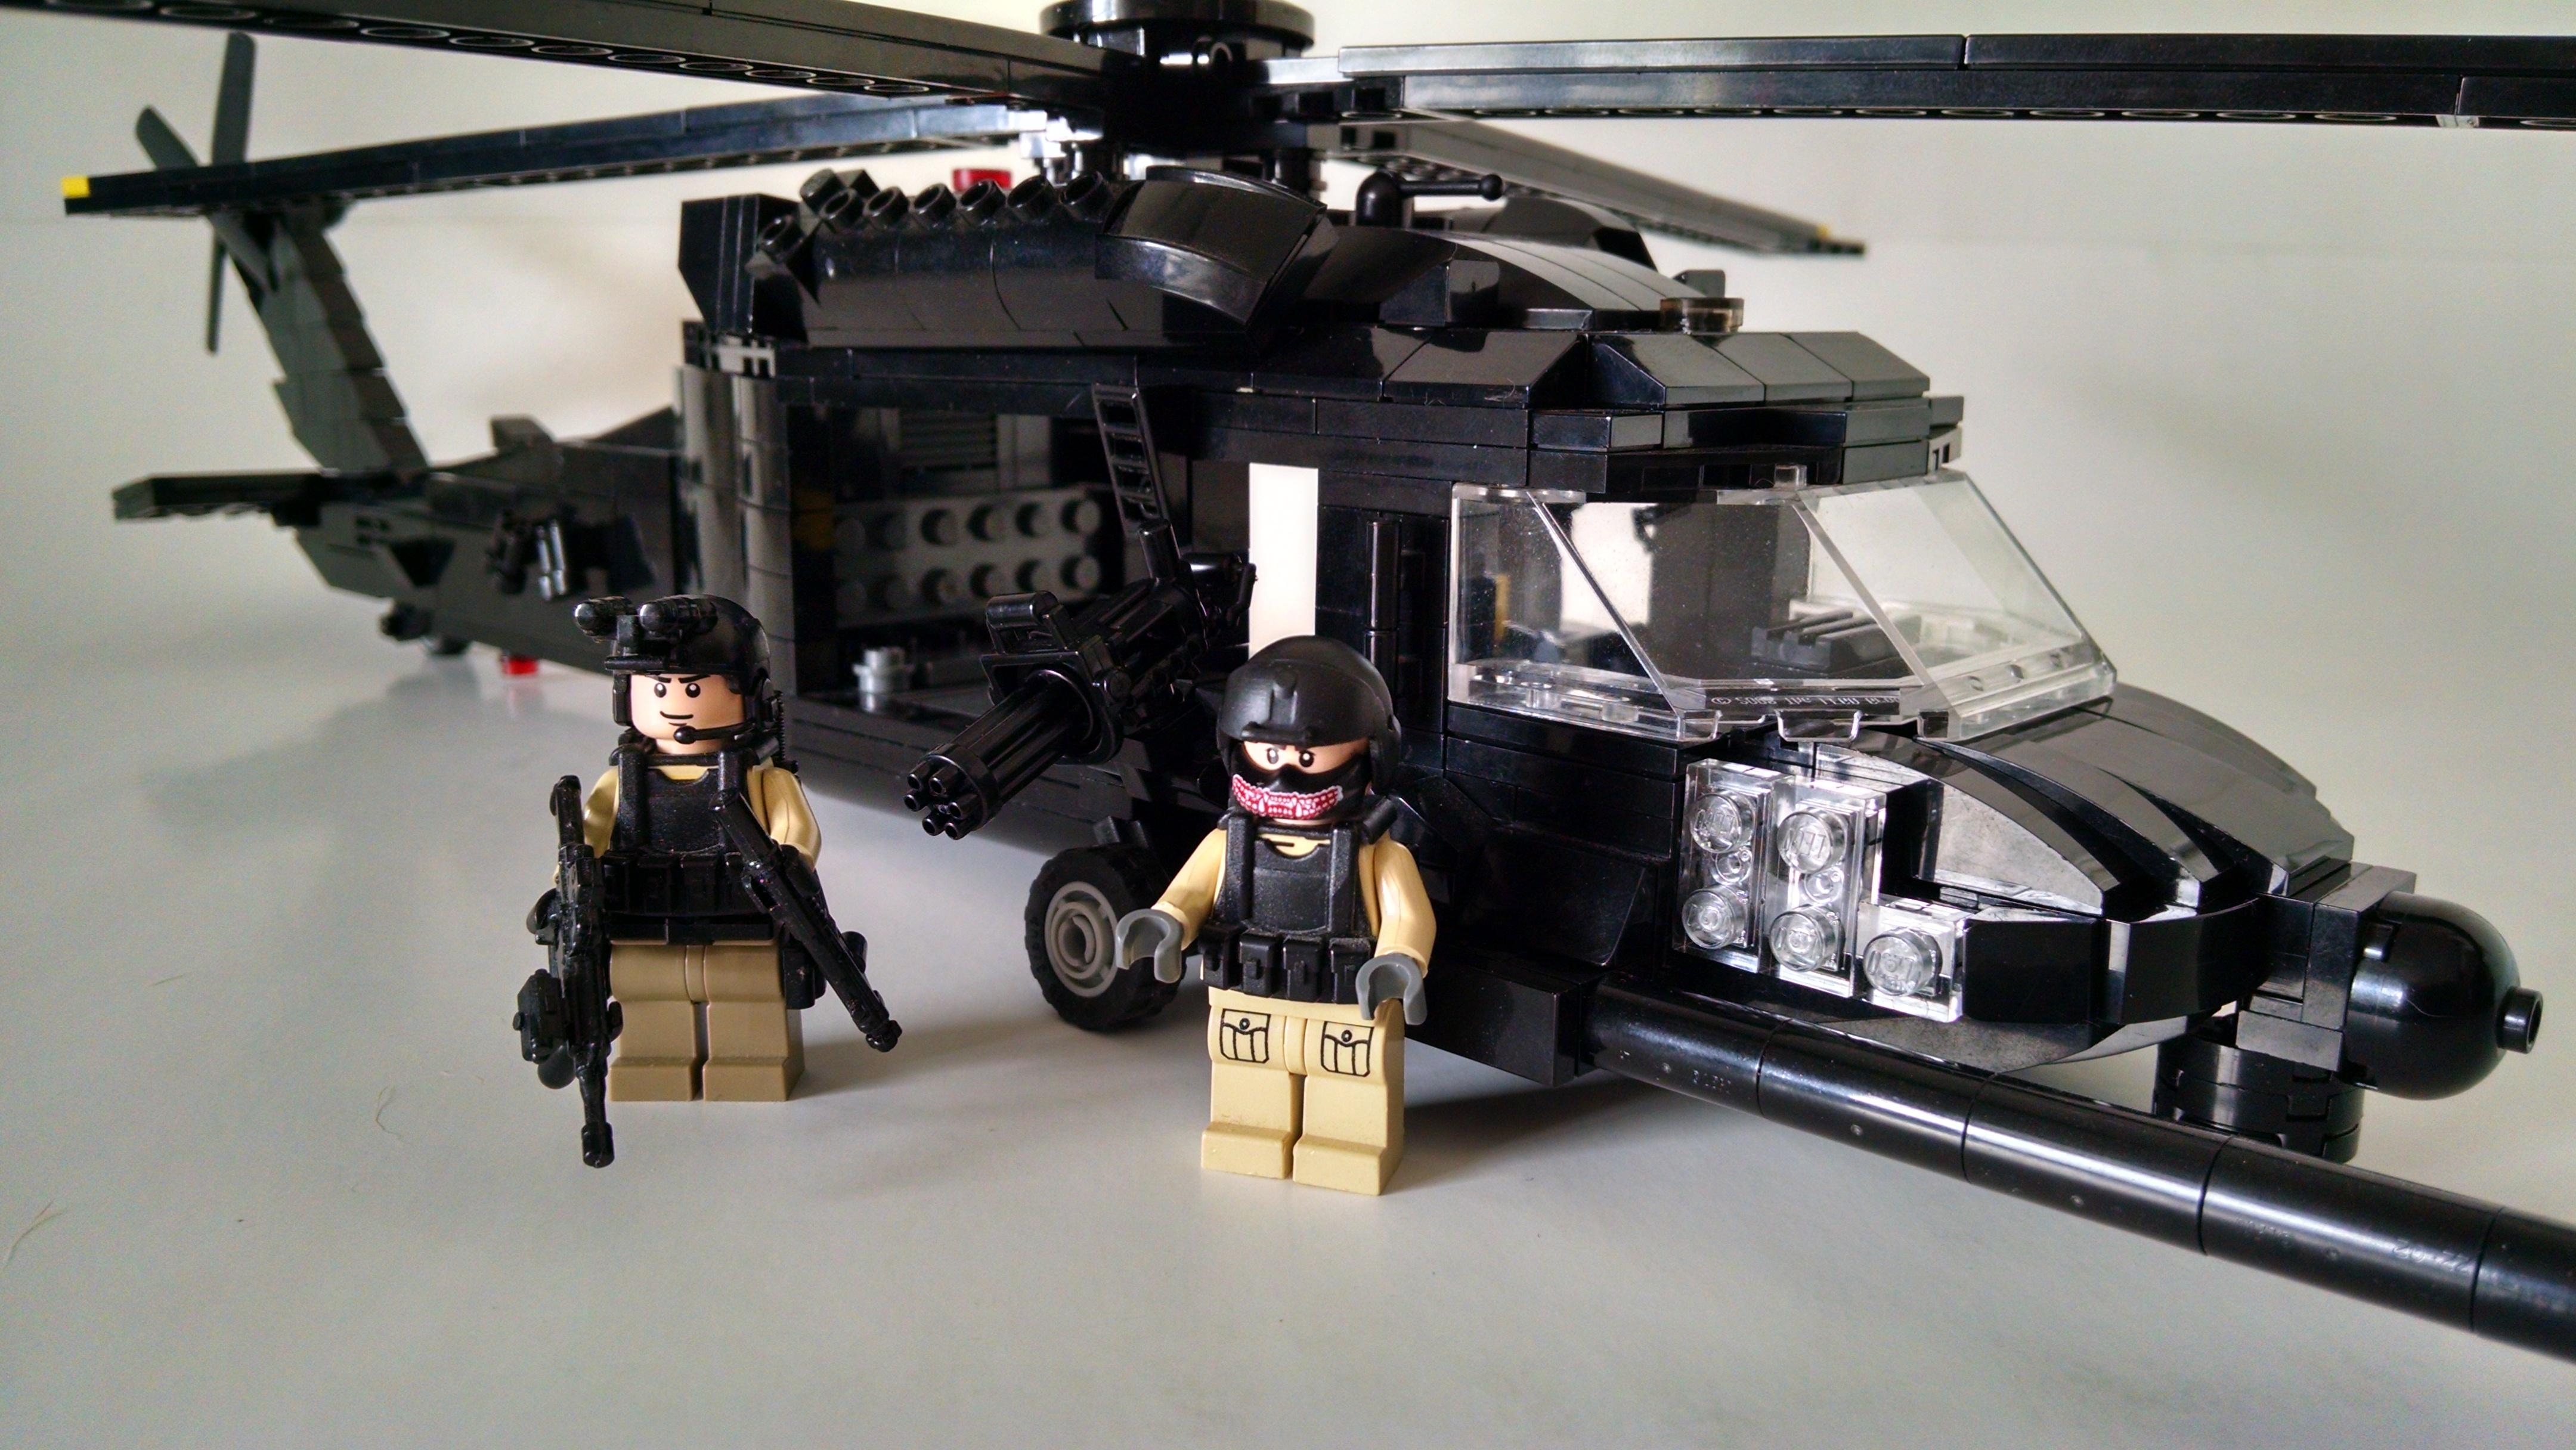 [MOC] MH-60M Blackhawk Helicopter as used by the 160th ...